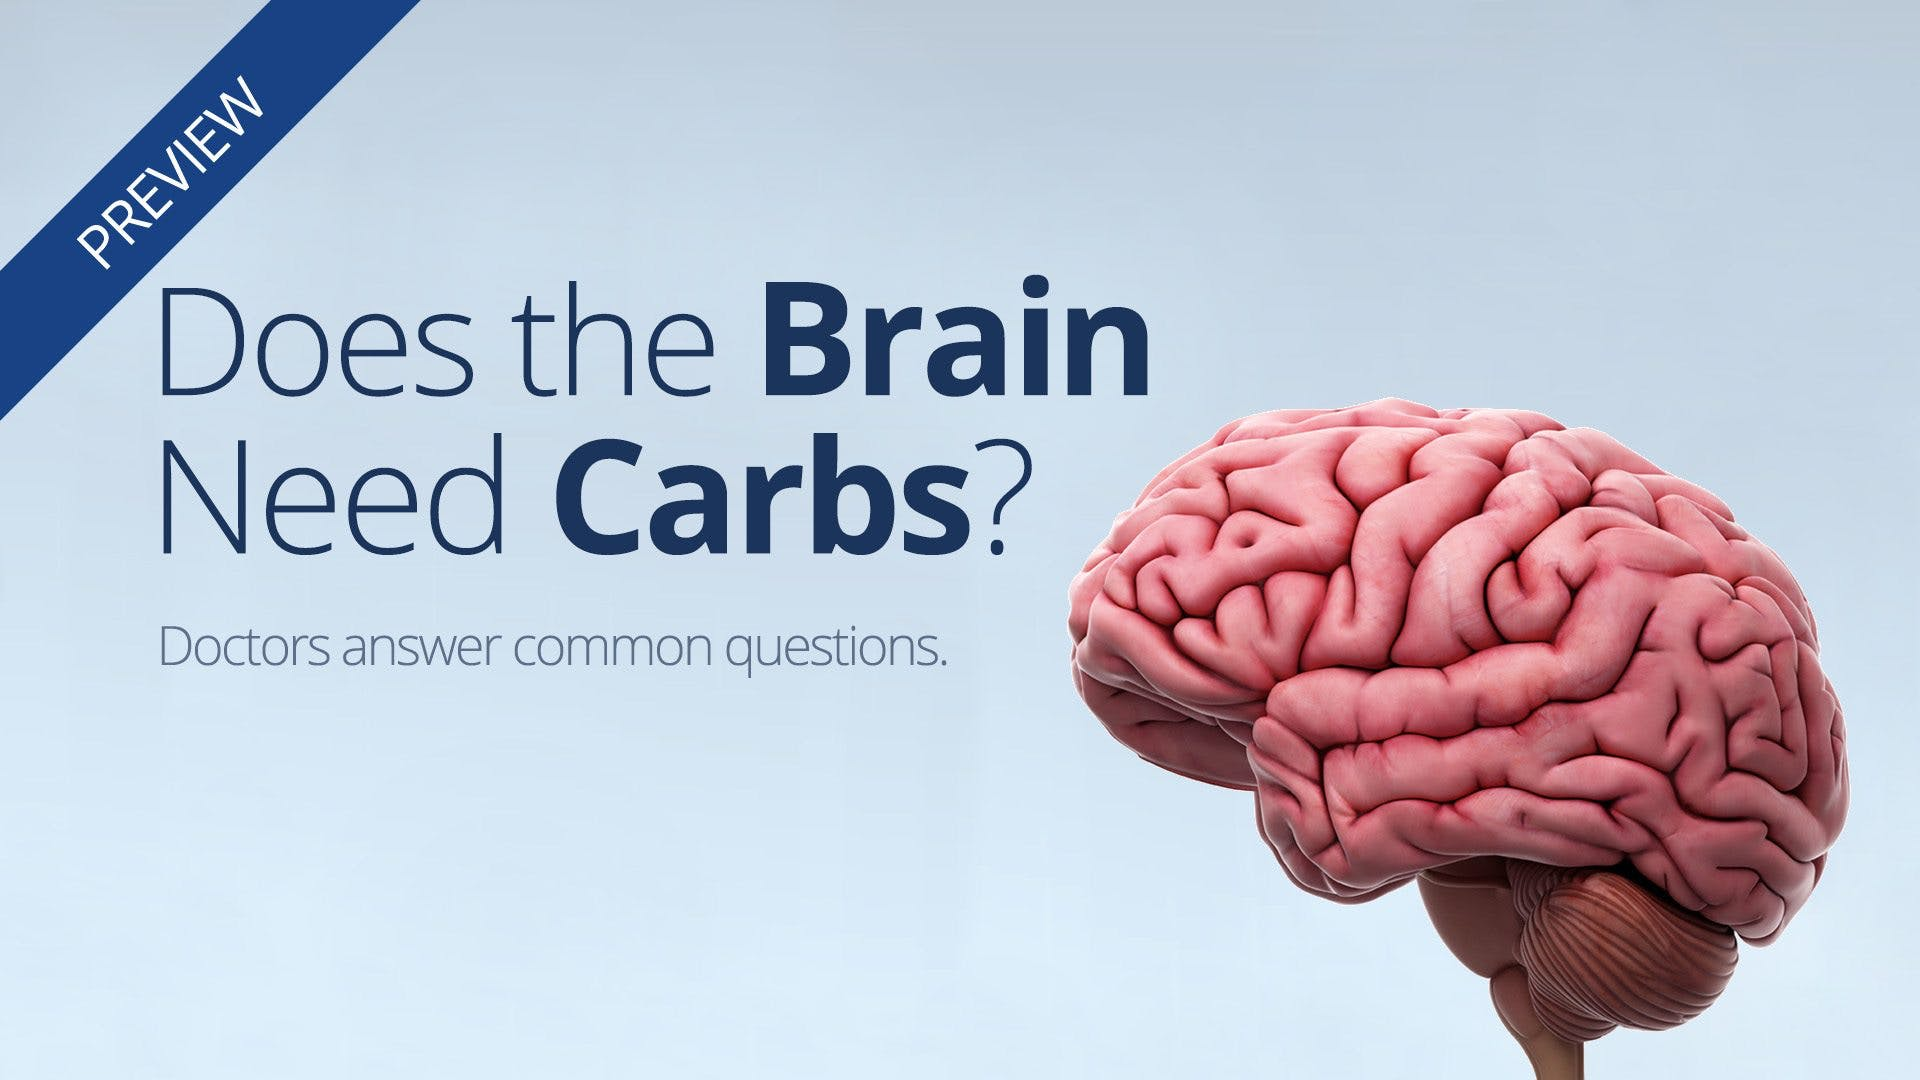 Our #2 low-carb question: Does the brain need carbs?